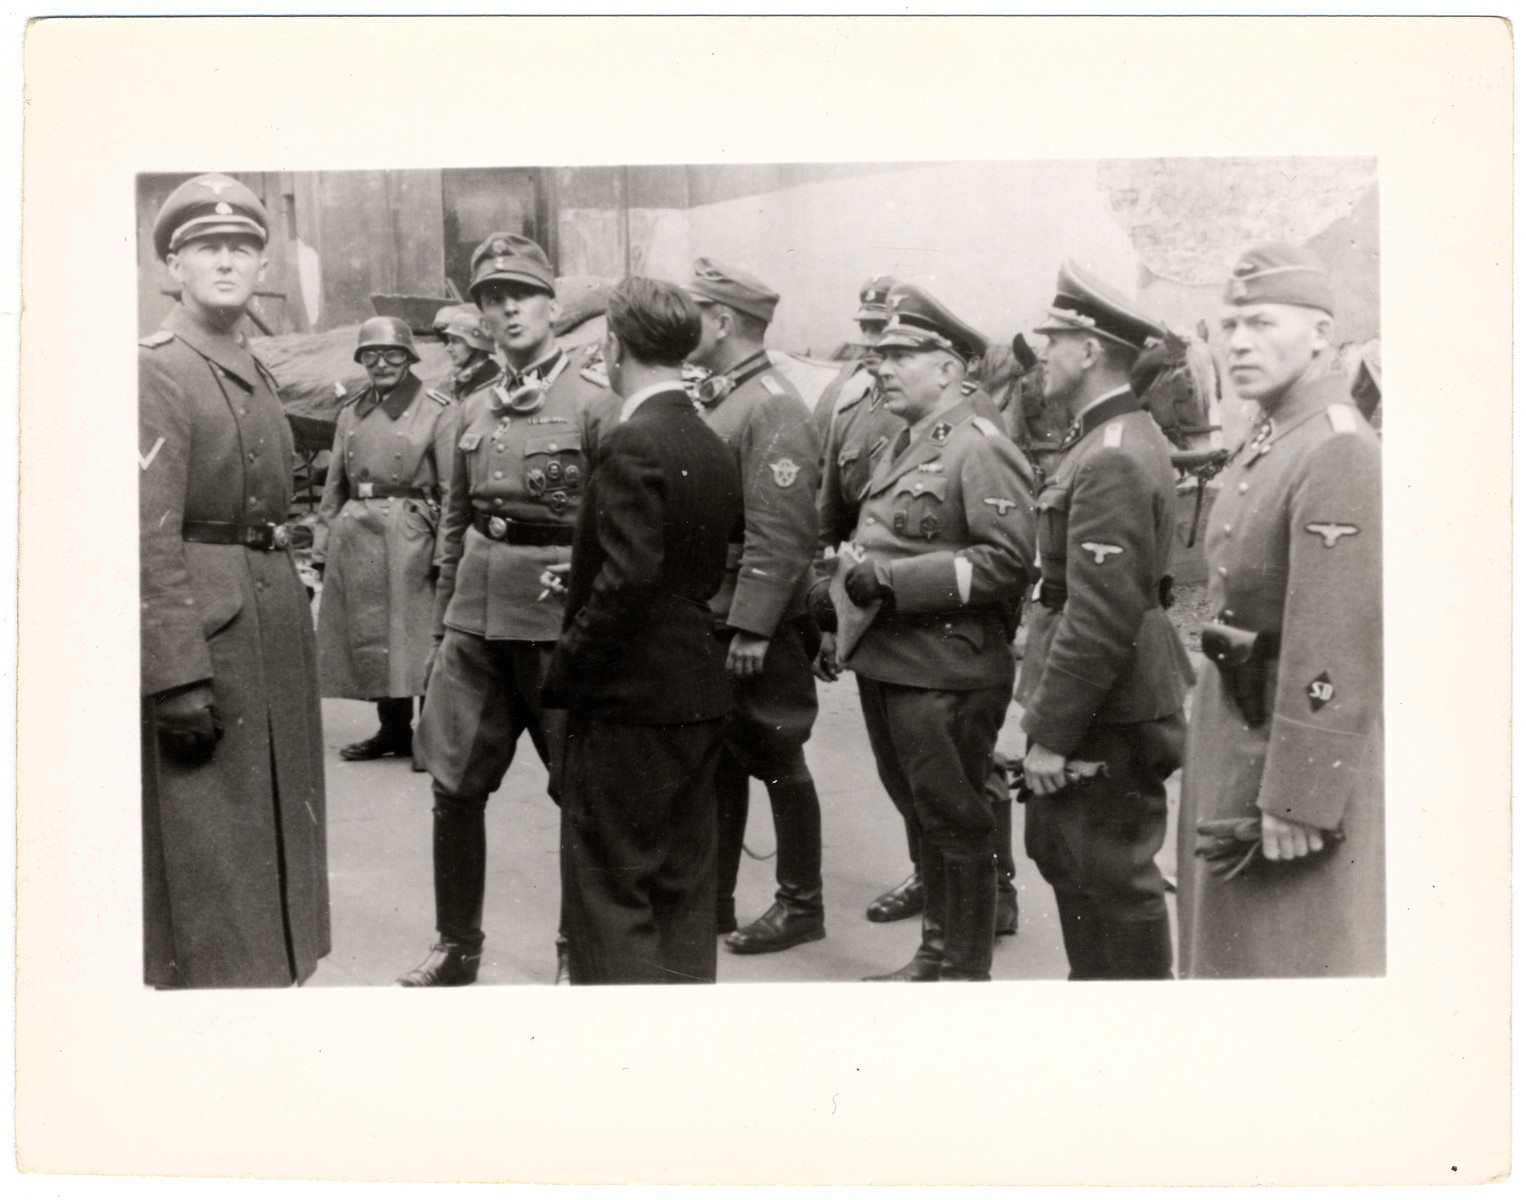 A group of German SS troops speaking to an unidentified man following the supression of the Warsaw uprising.